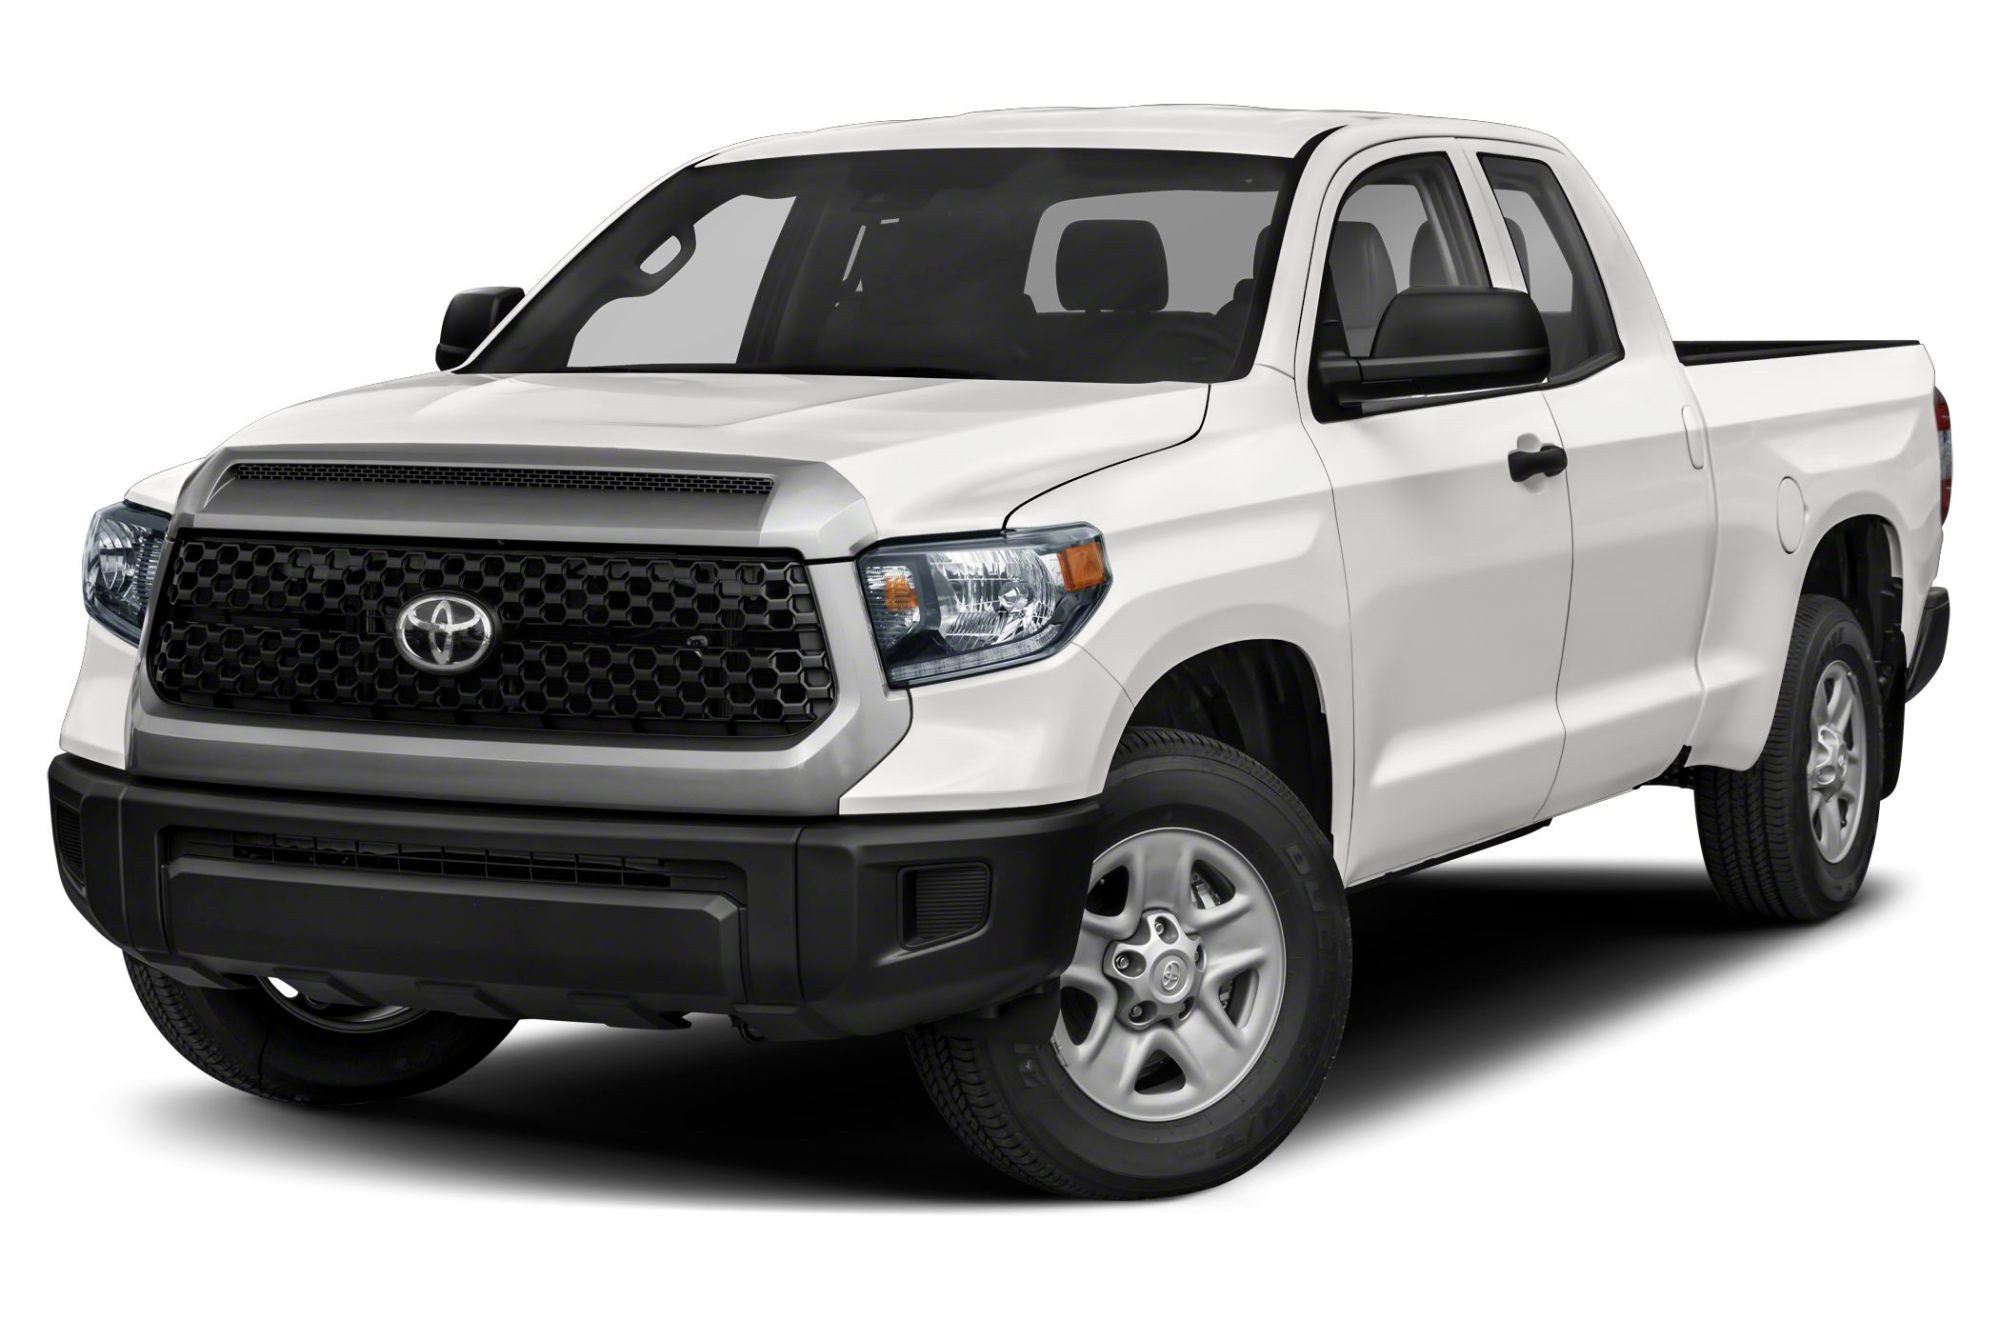 hight resolution of 2019 toyota tundra sr5 5 7l v8 4x4 double cab long bed 8 ft box 164 6 in wb equipment